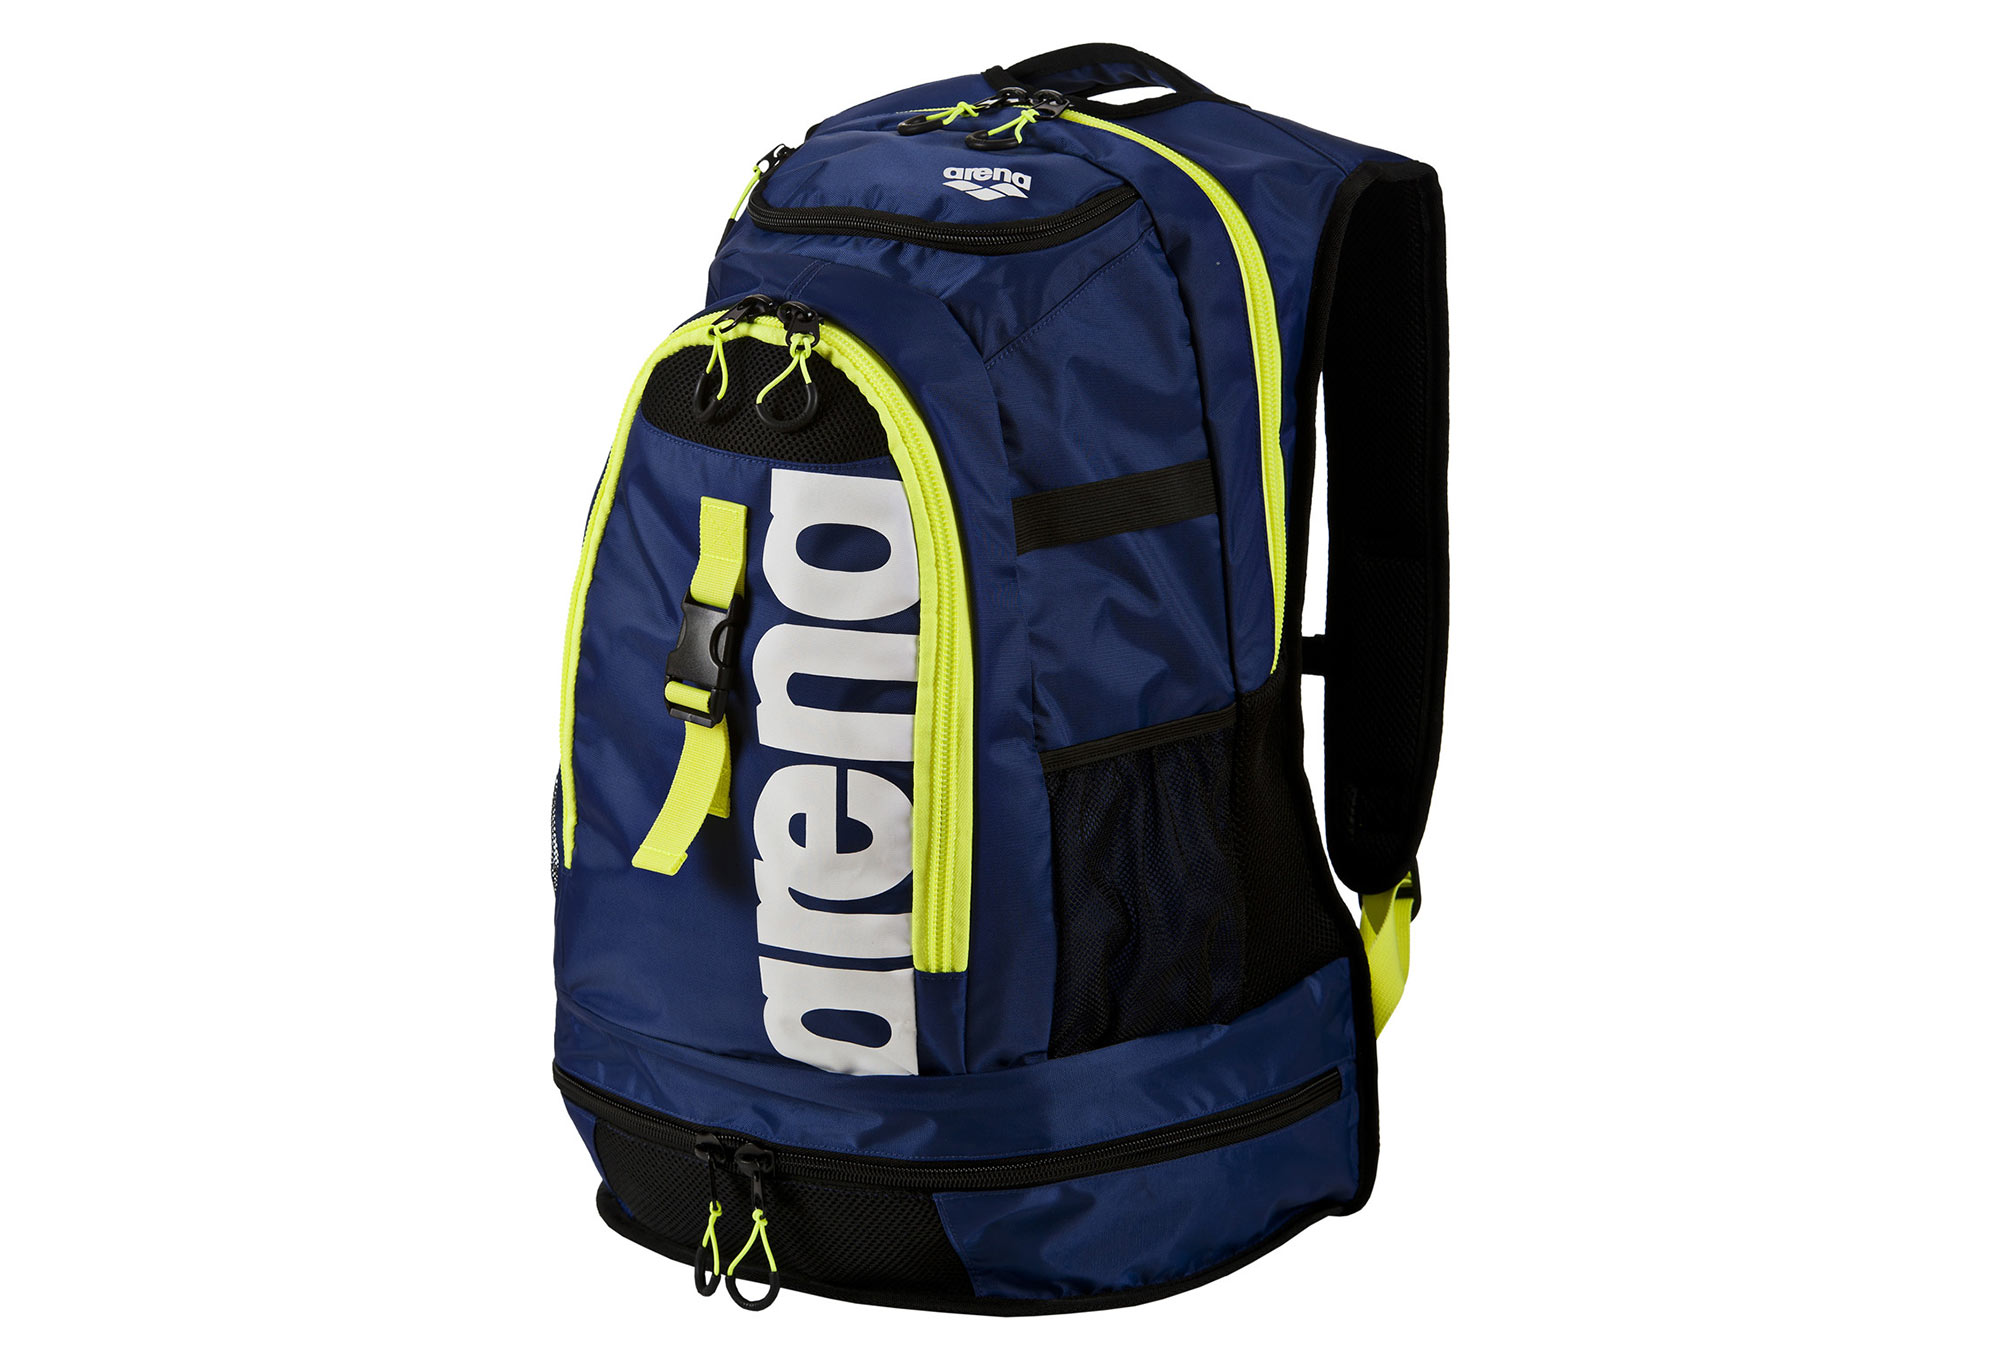 e4590276f85b ARENA Backpack FASTPACK 2.1 Blue Yellow